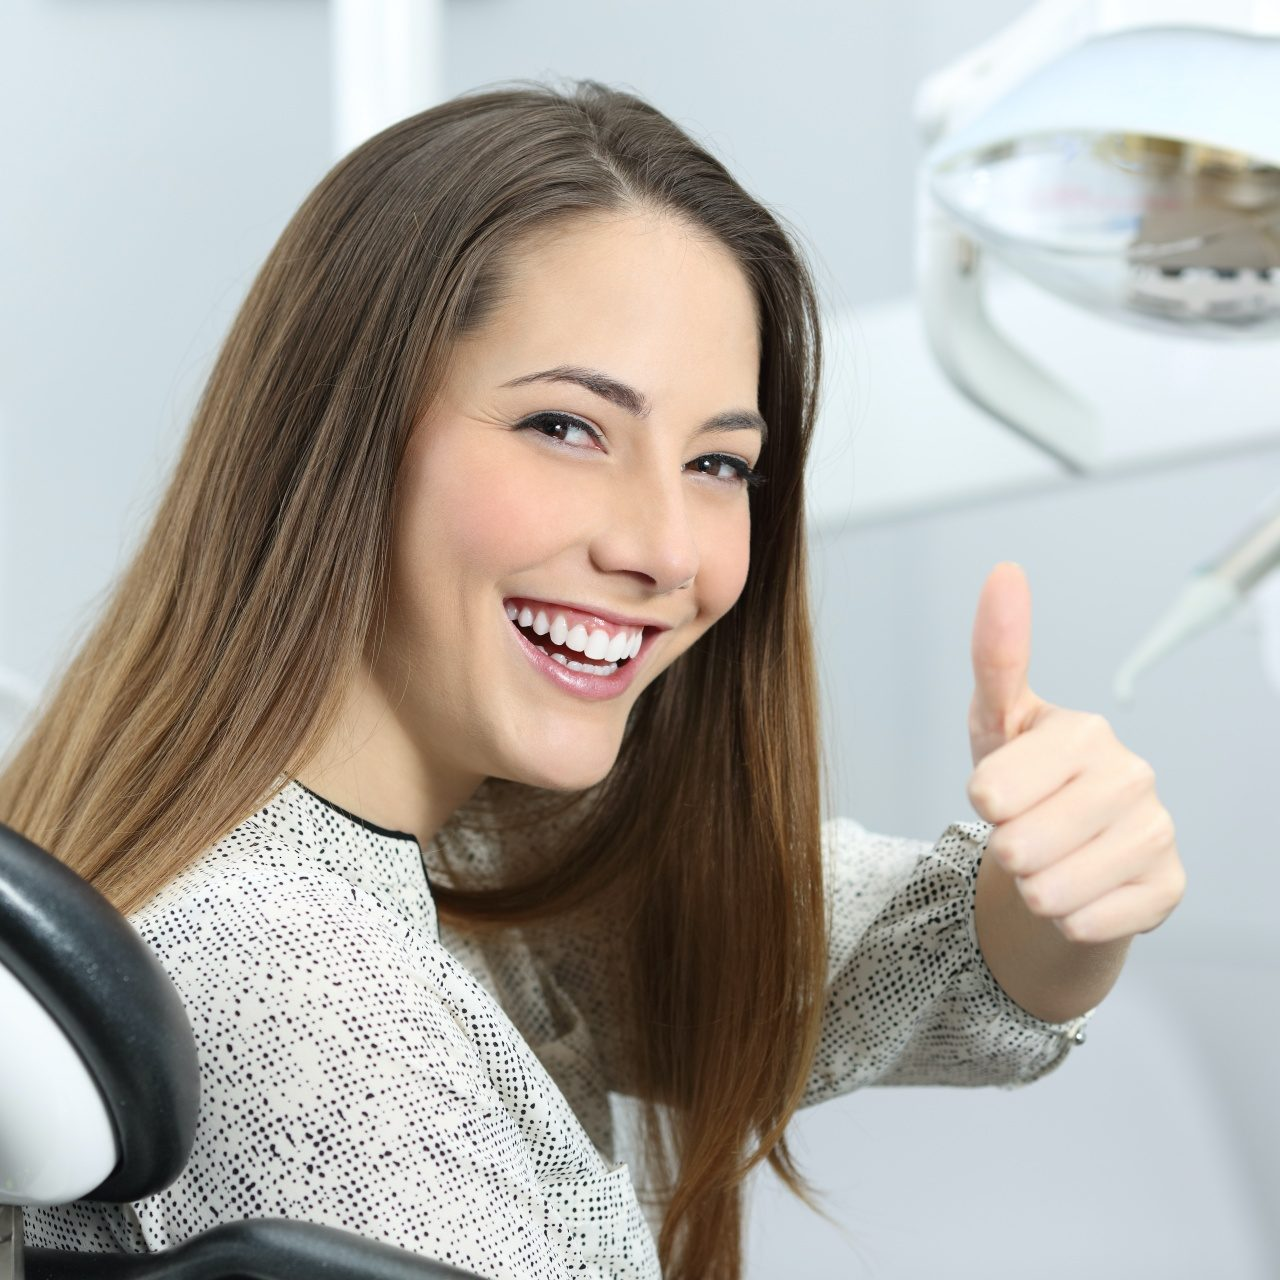 Woman smiling and giving a thumbs up in a dentist chair